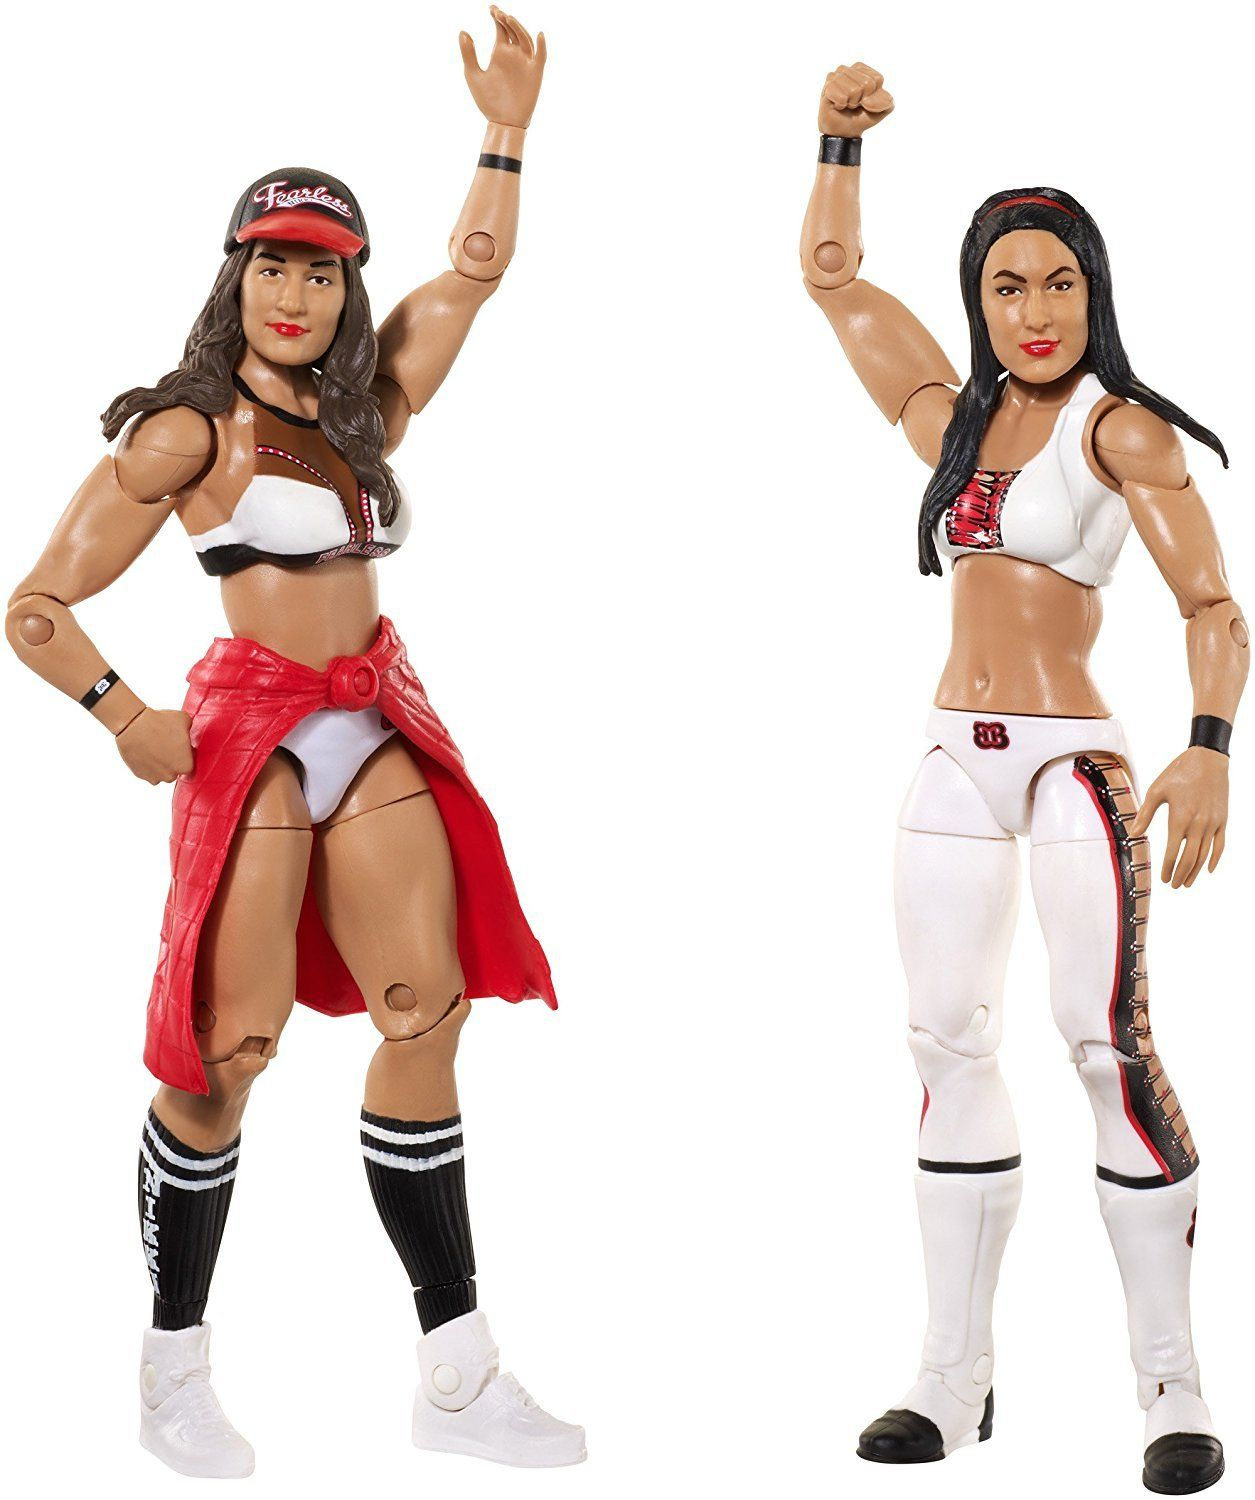 WWE Nikki Bella & Brie Bella Action Figure (2 Pack) | Products ...